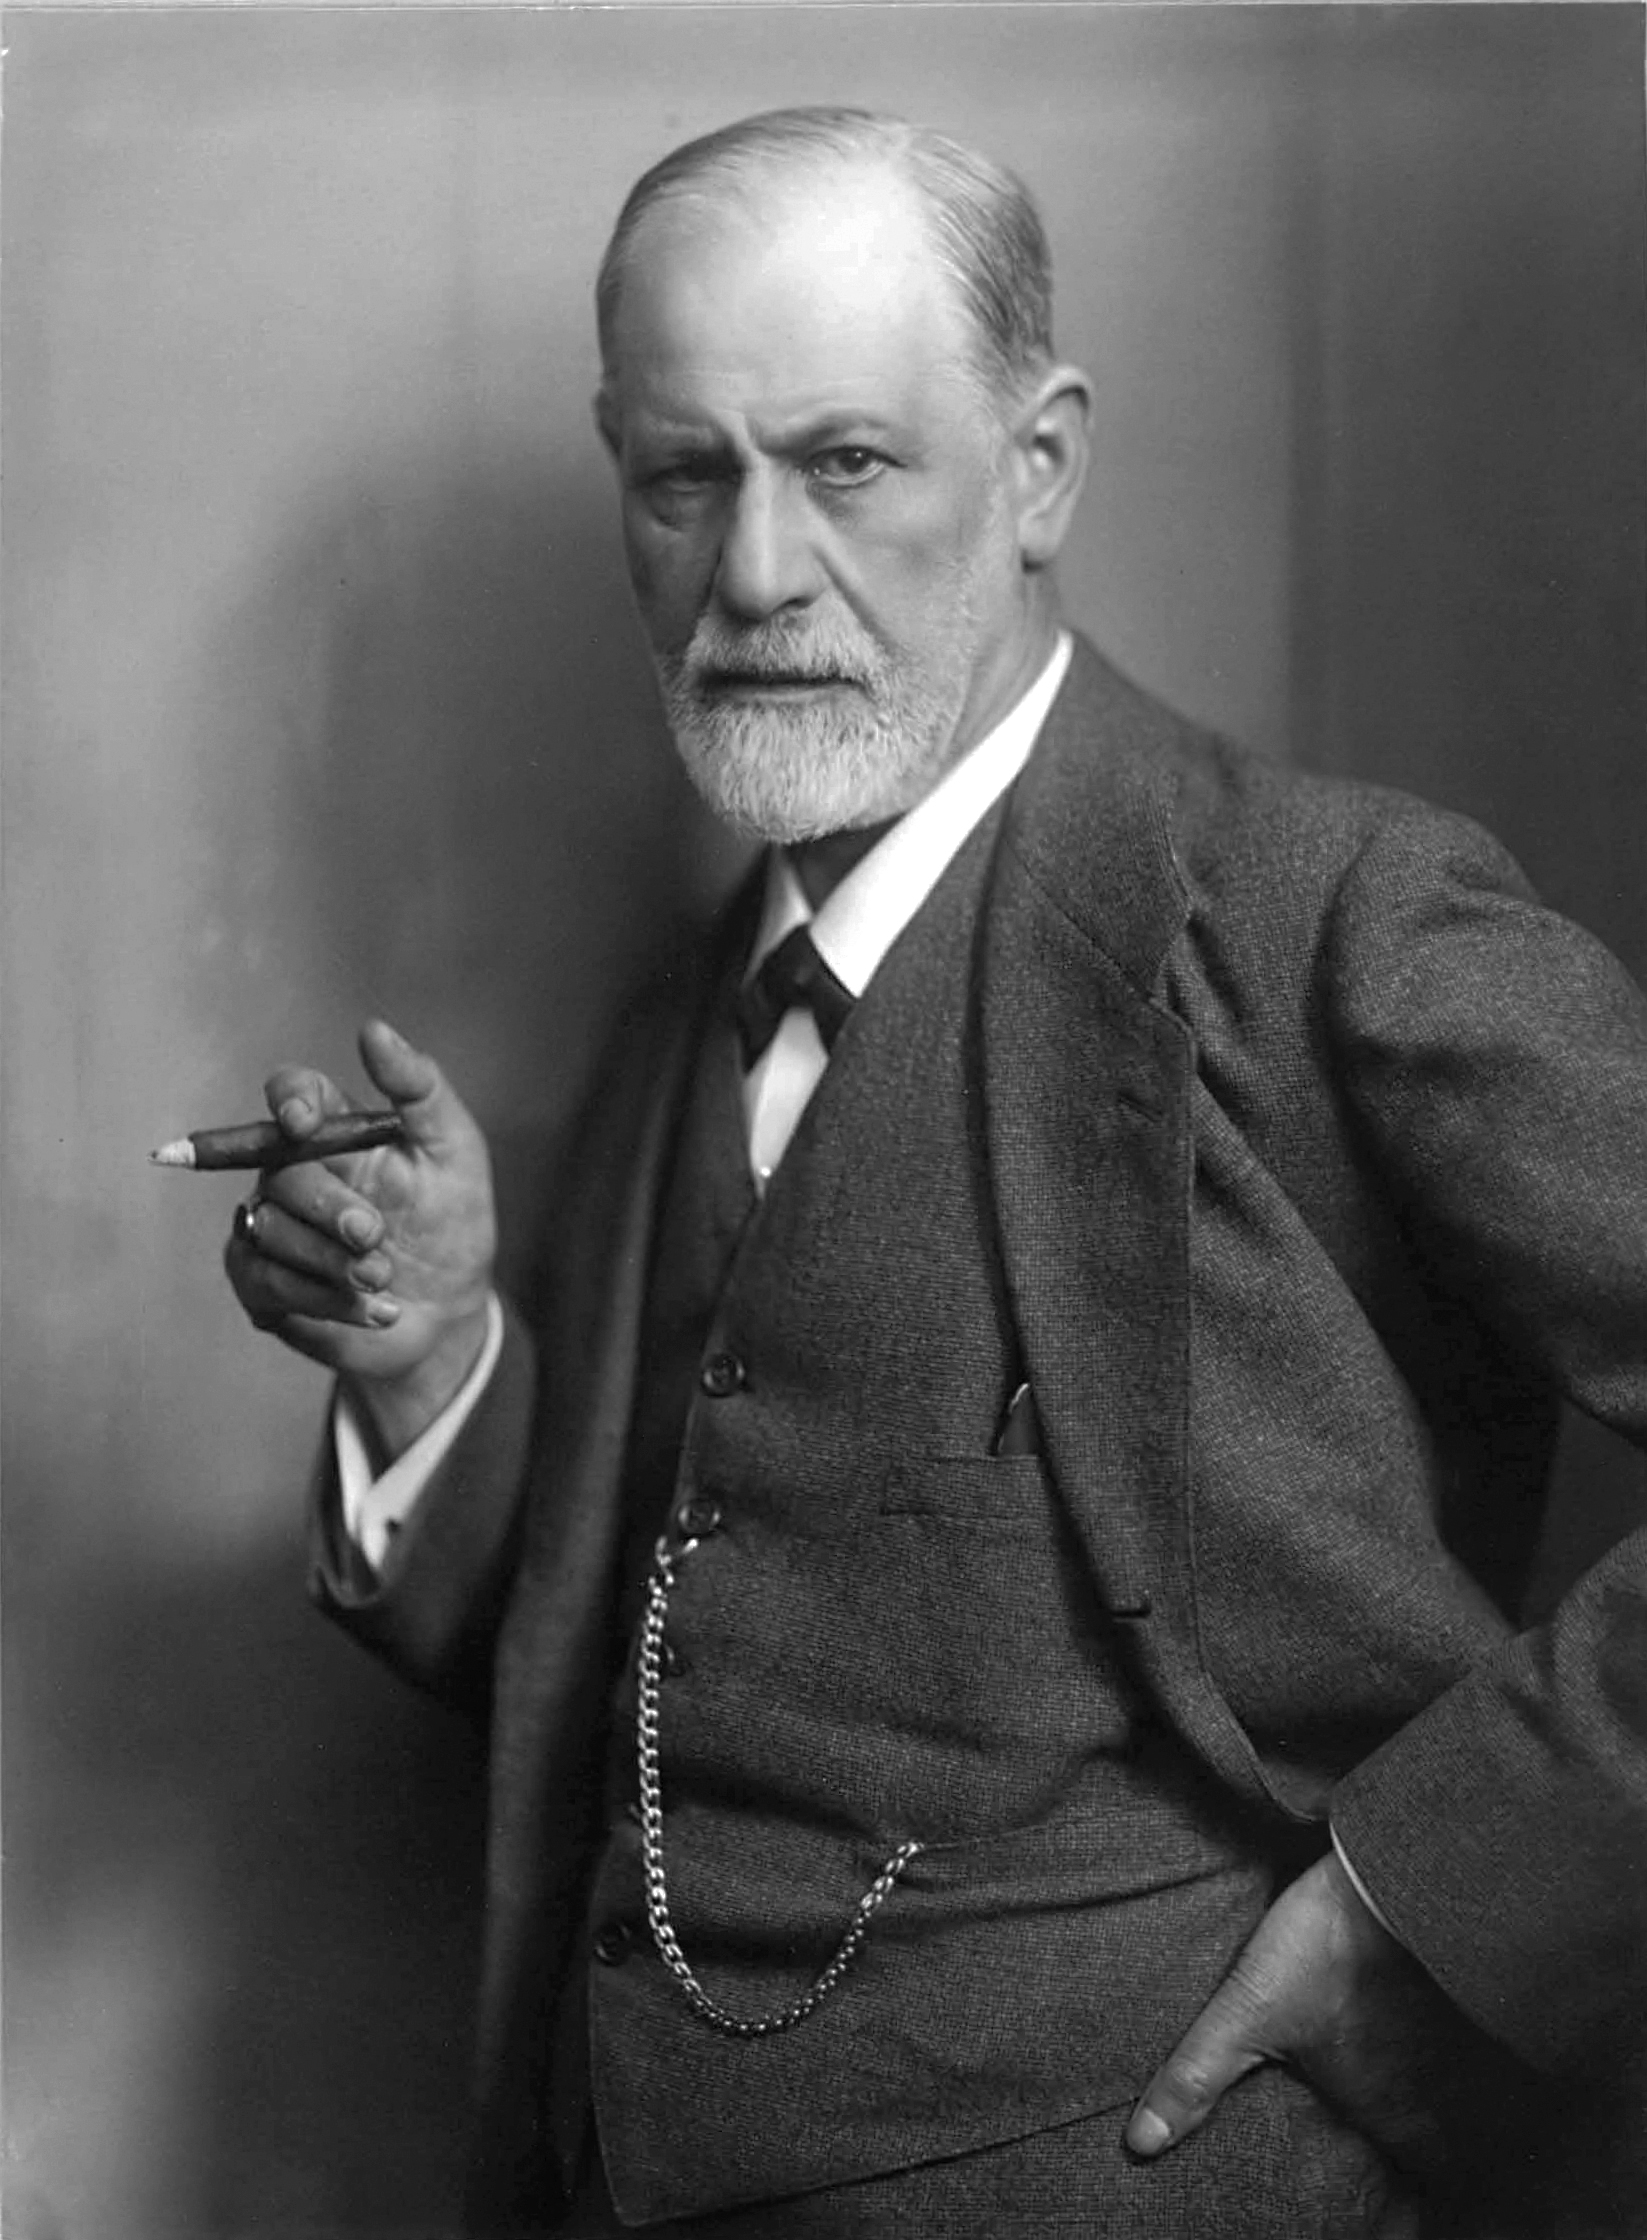 Sigmund Freud by Max Halberstadt, {{circa}} 1921<ref>{{cite web |last=Halberstadt |first=Max |url=https://www.loc.gov/item/98514770/ |title=Sigmund Freud, half-length portrait, facing left, holding cigar in right hand |date=c. 1921 |website=[[Library of Congress]] |accessdate=June 8, 2017 |deadurl=no |archiveurl=https://web.archive.org/web/20171228054049/https://www.loc.gov/item/98514770/ |archivedate=28 December 2017 |df=dmy-all }}</ref>